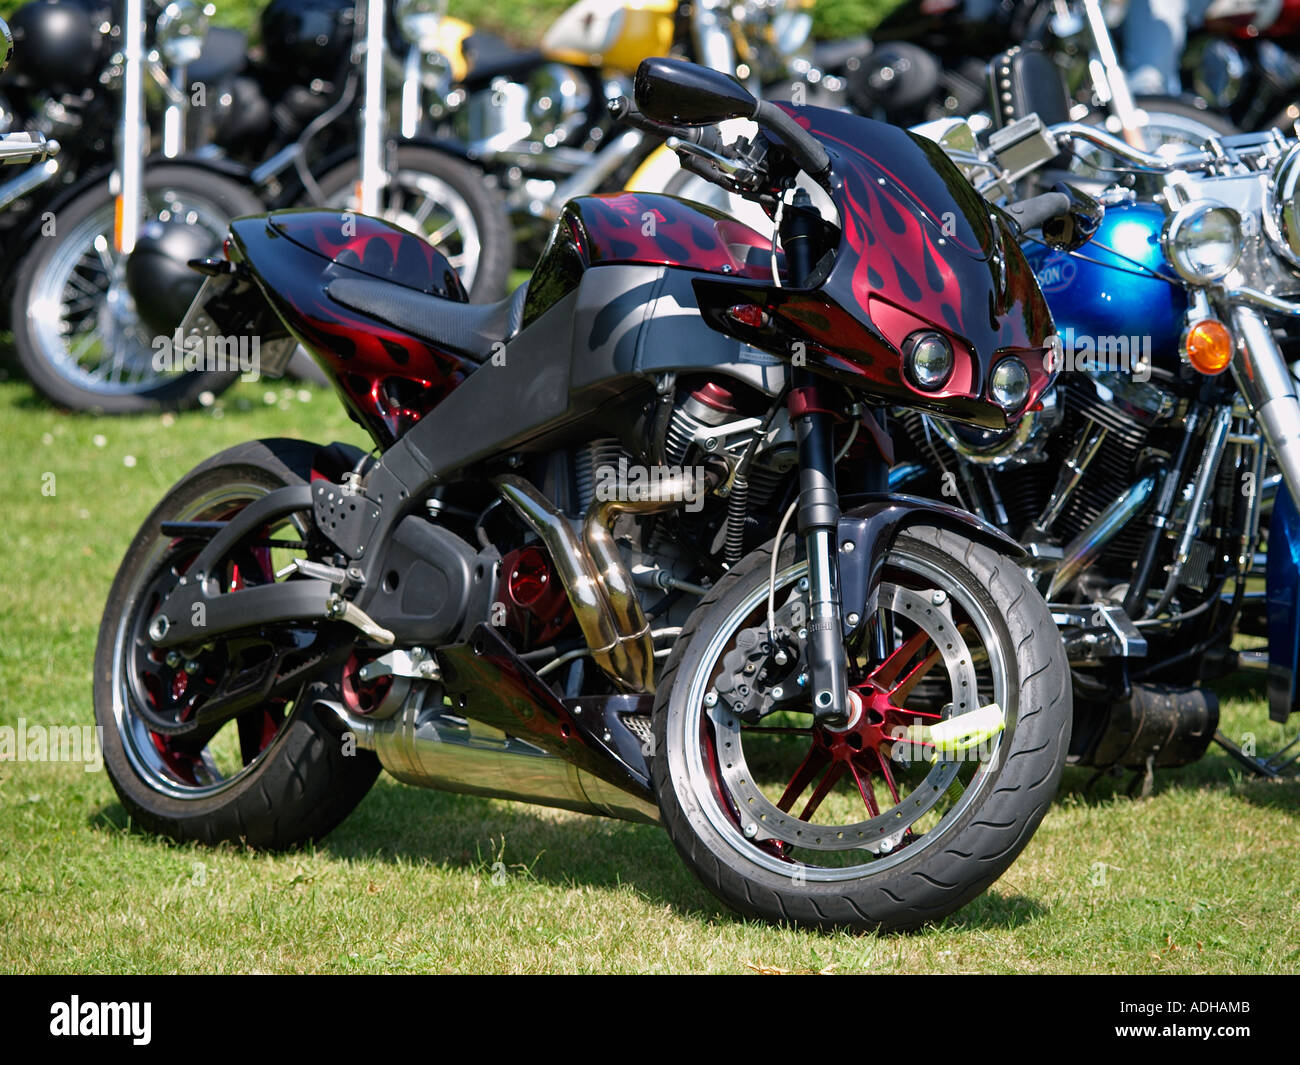 Black With Red Flames Paintjob Customized Buell Harley Davidson Engined Sports Motorcycle Breda The Netherlands